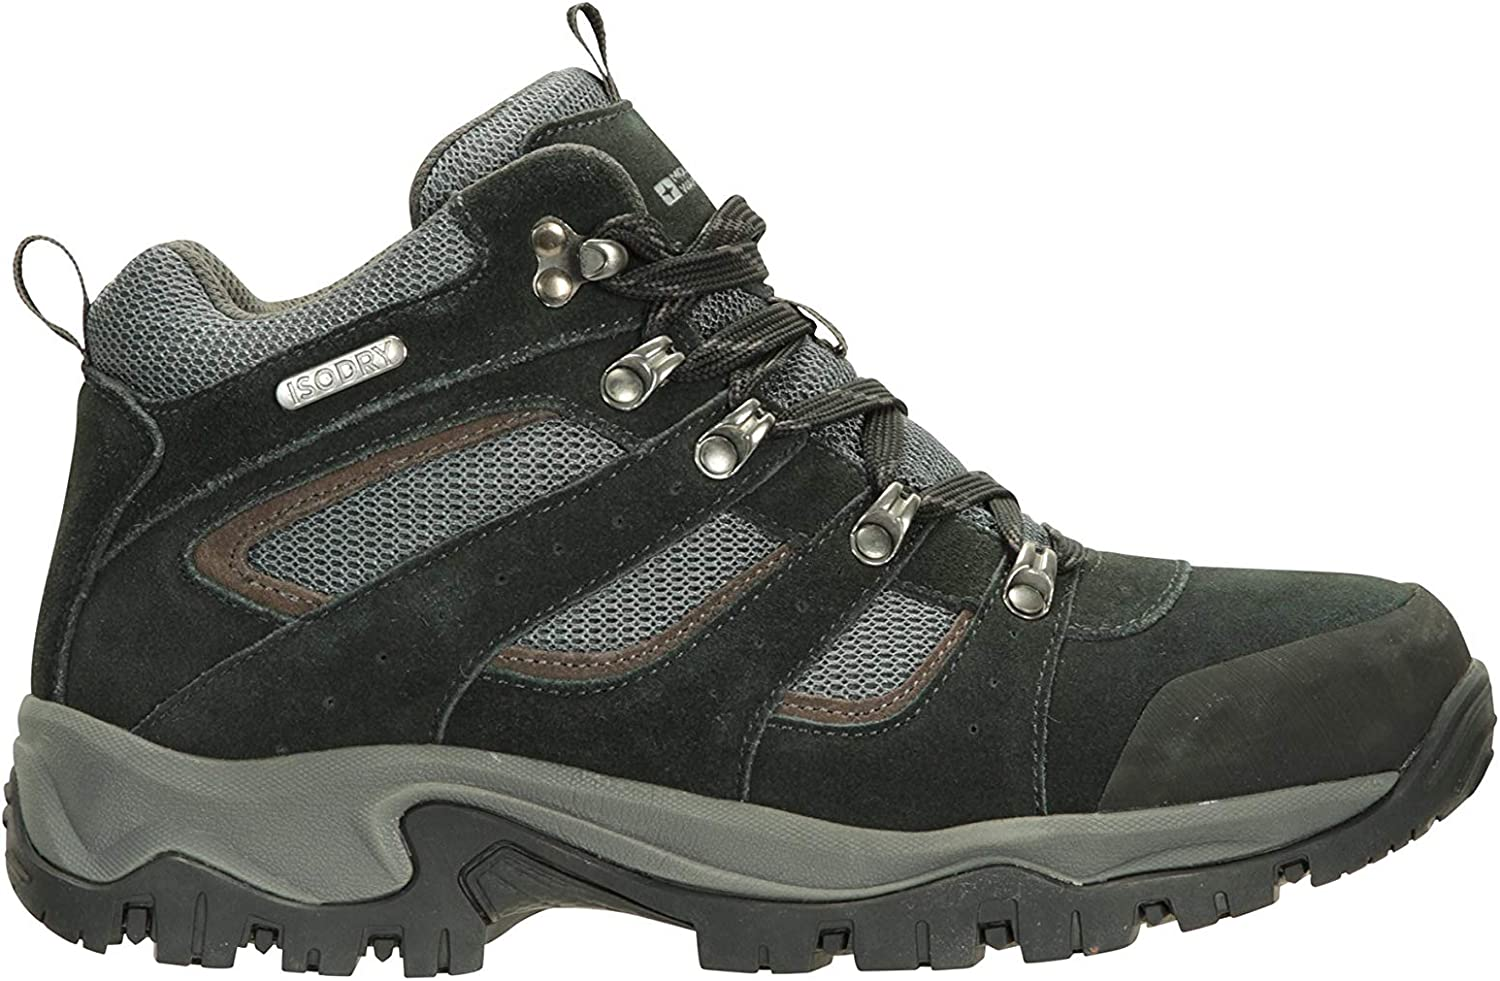 Waterproof Shoes Mountain Warehouse Voyage Mens Mid Hiking Boots